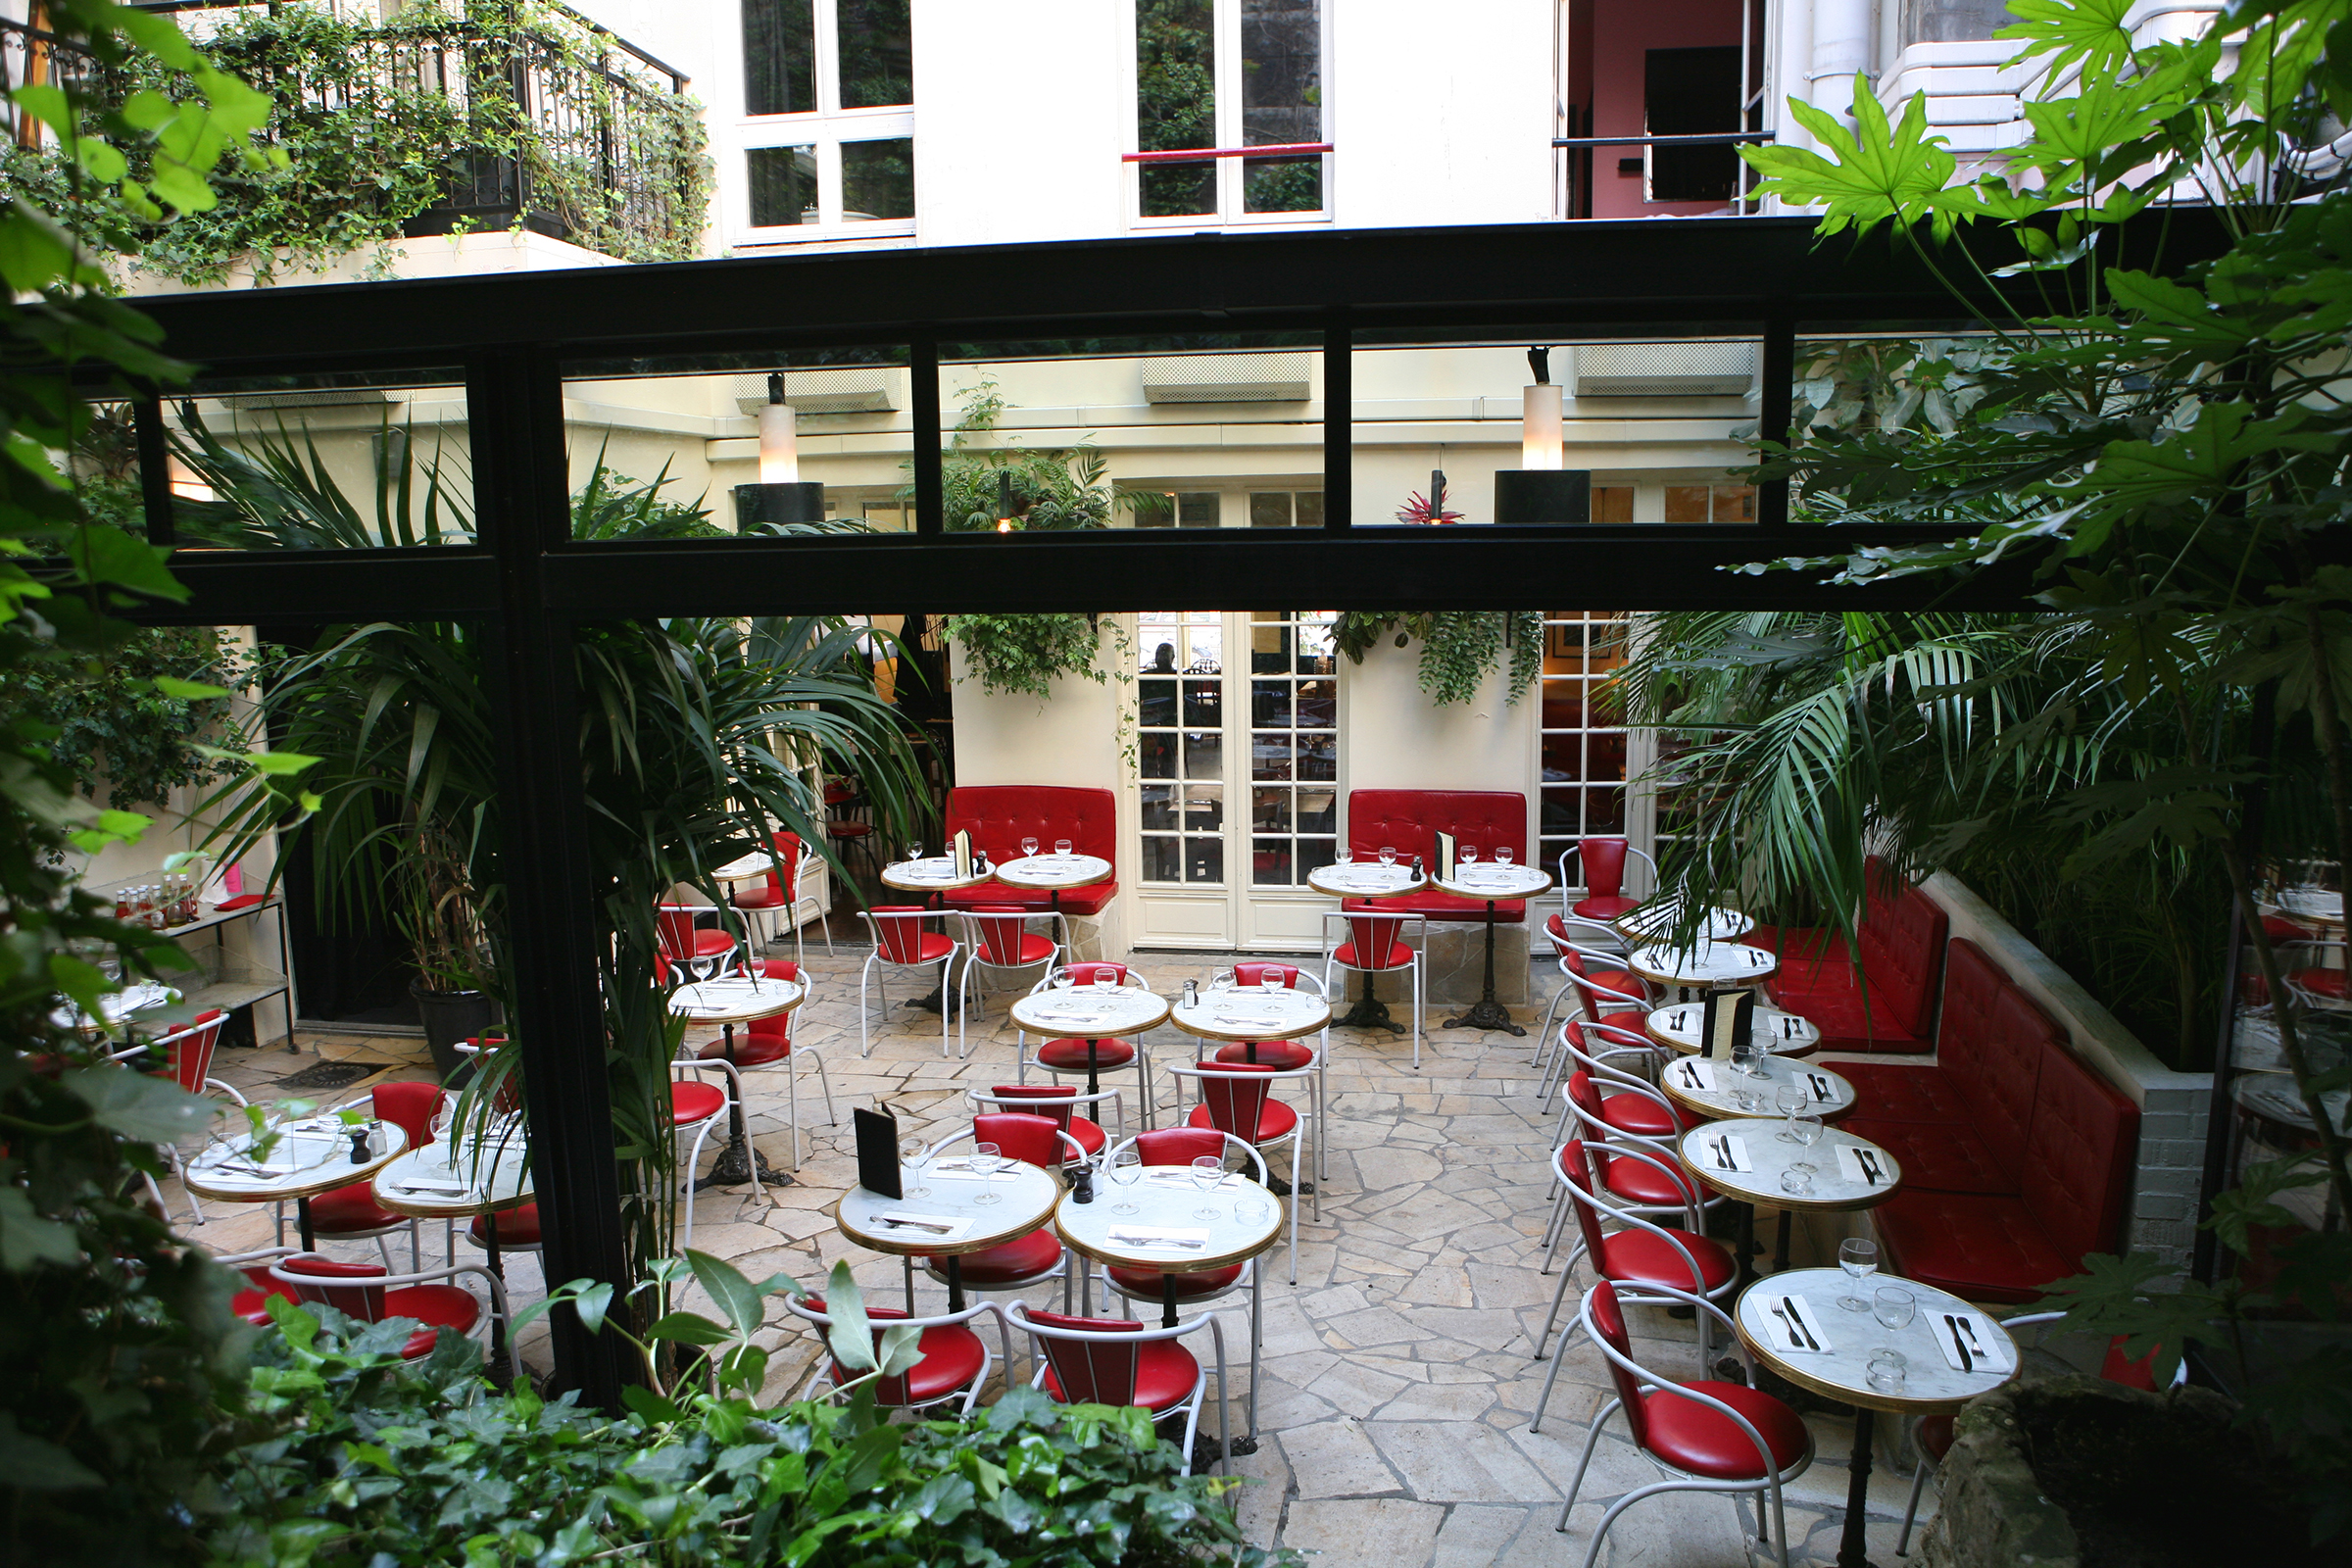 Hotel Amour Paris France 48 hours in Paris